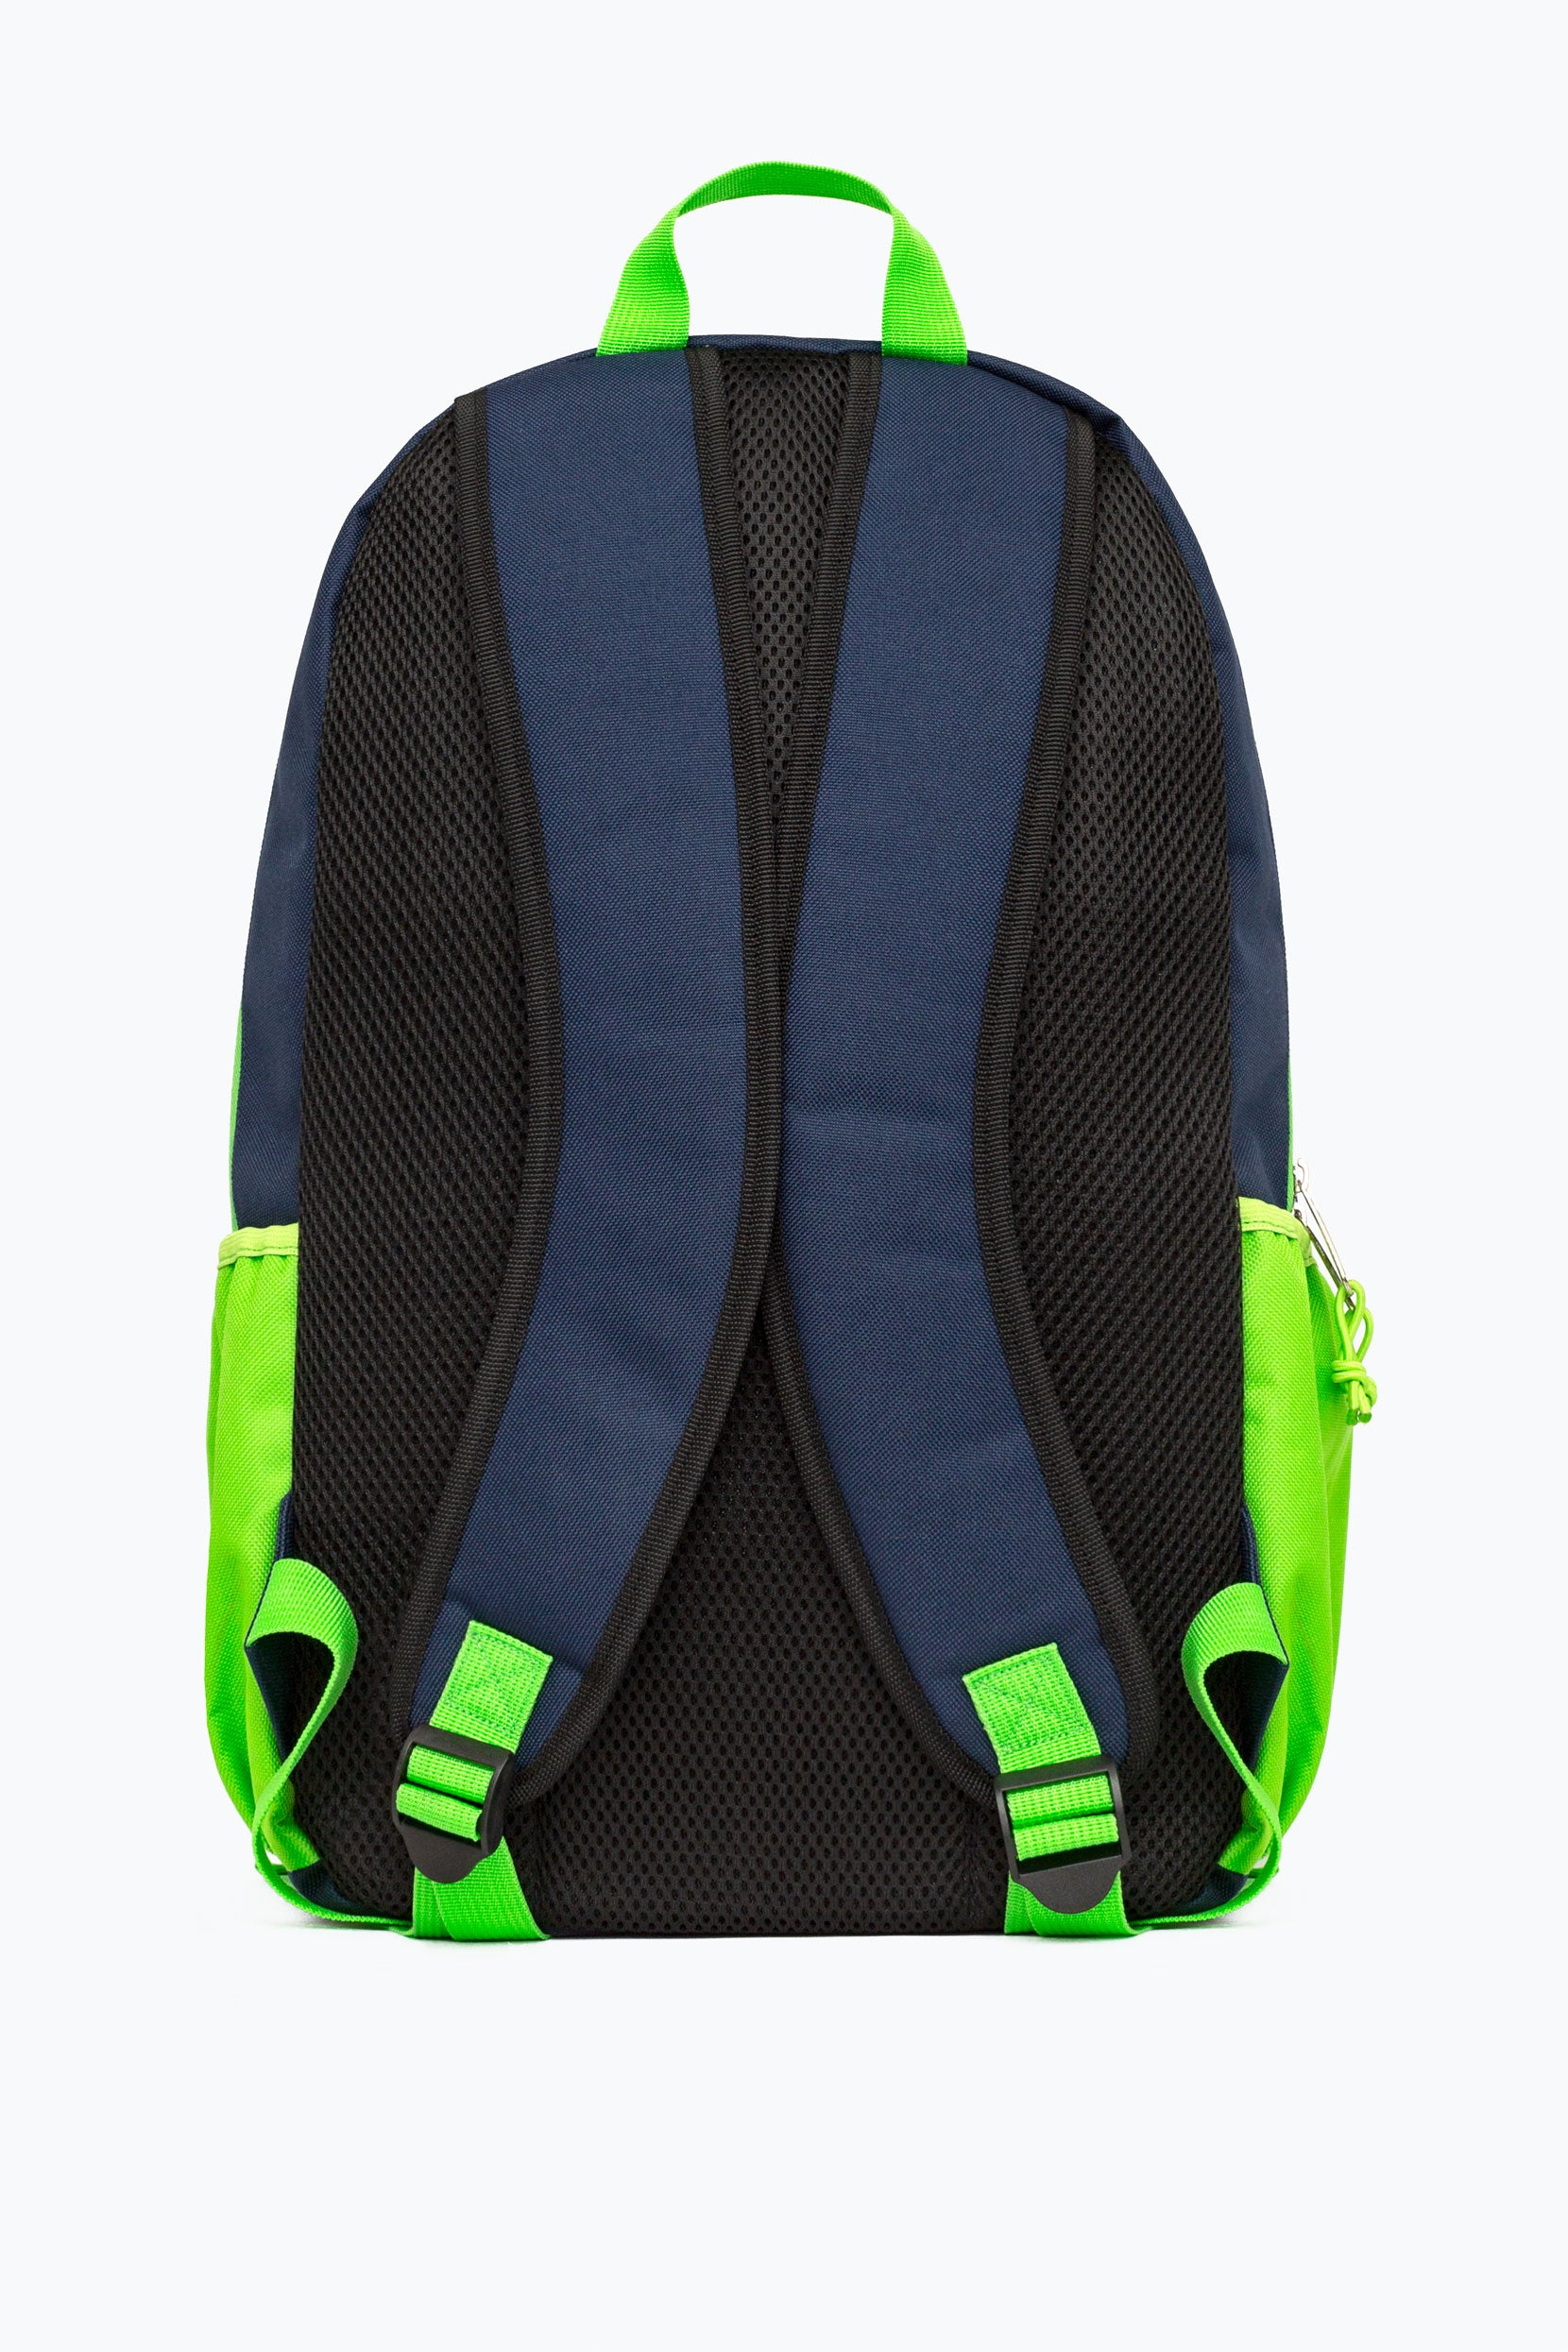 09f3bccc HYPE NAVY GREEN NEON FLASH MAXI BACKPACK – JustHype ltd